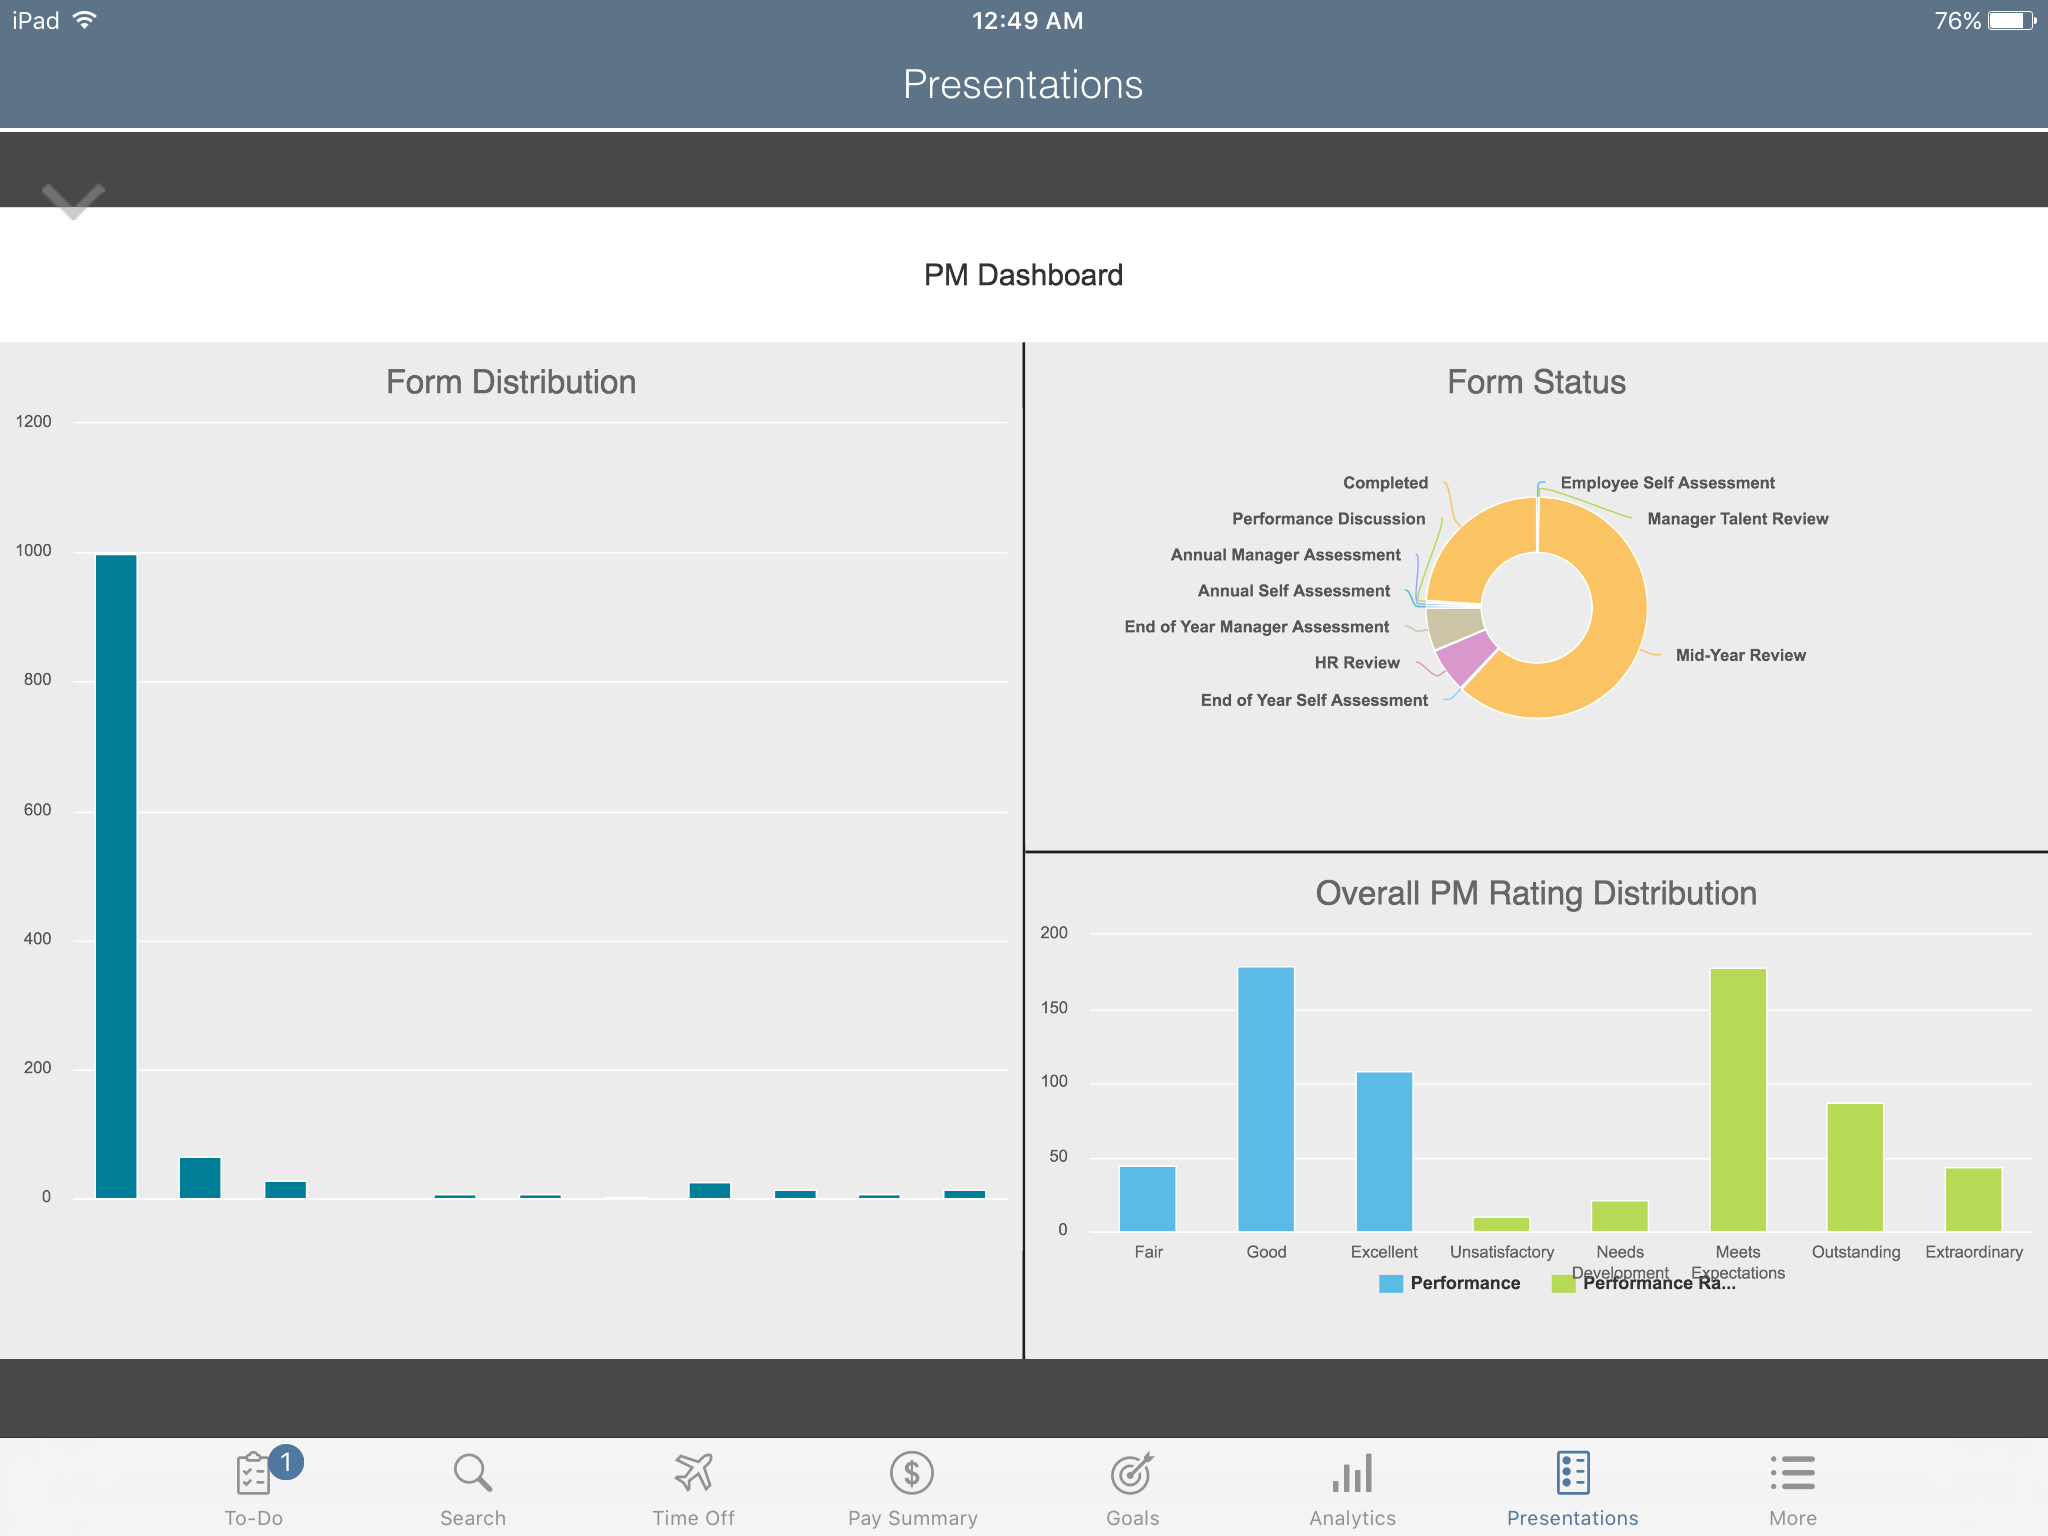 Presentations - Pm Dashboard.png